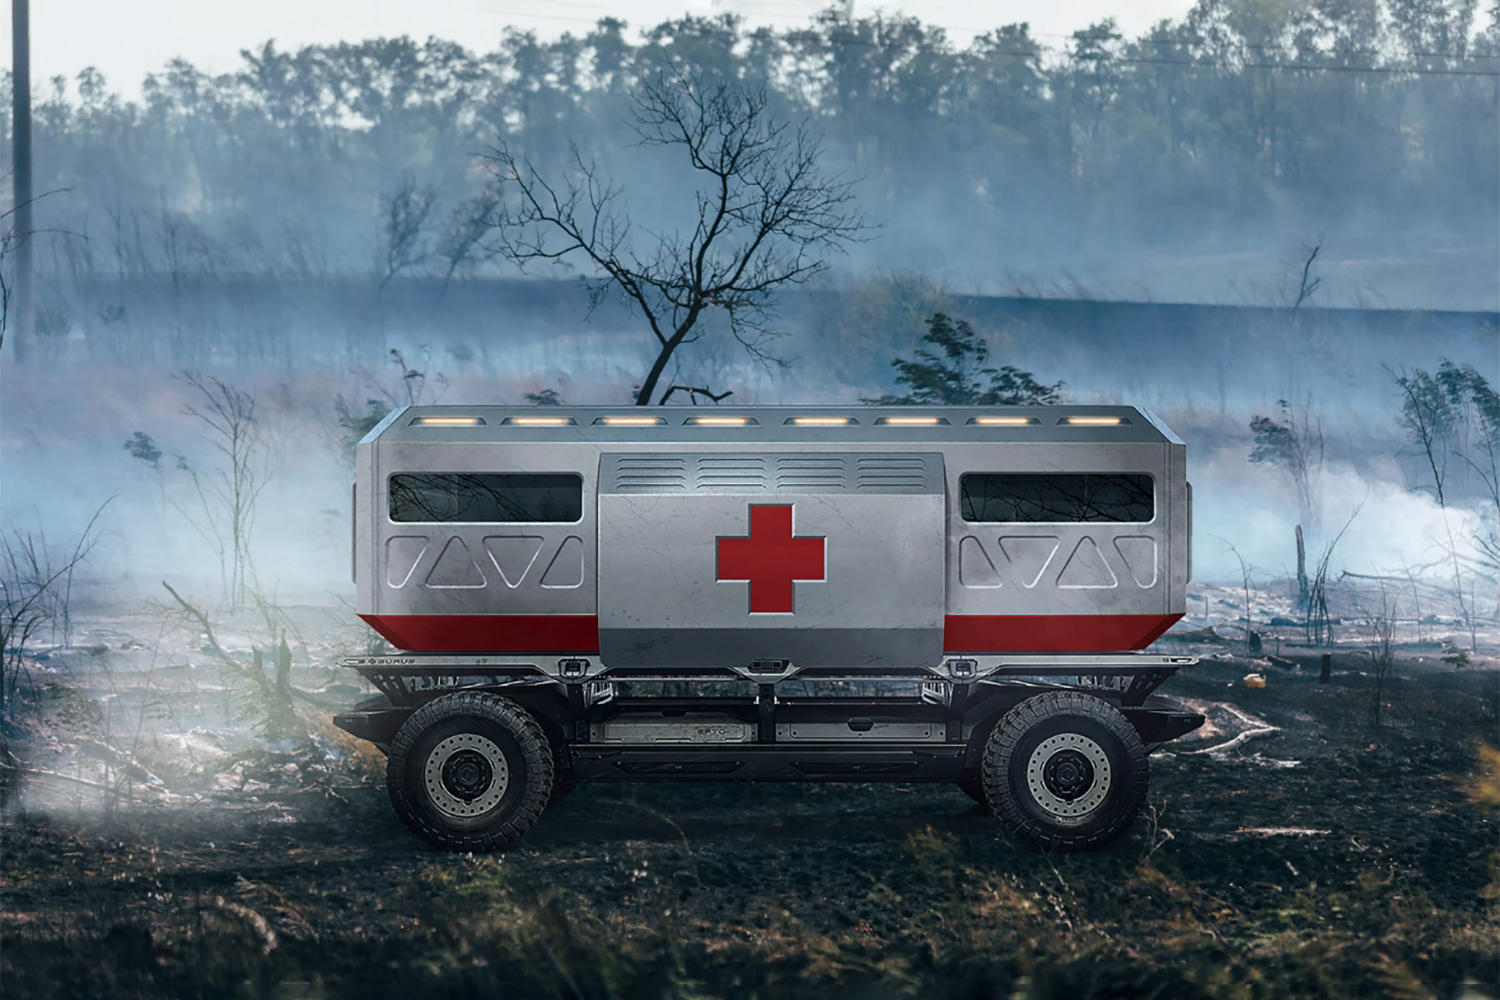 Delivering Clean Power to Disaster Scenes, Without Compromise